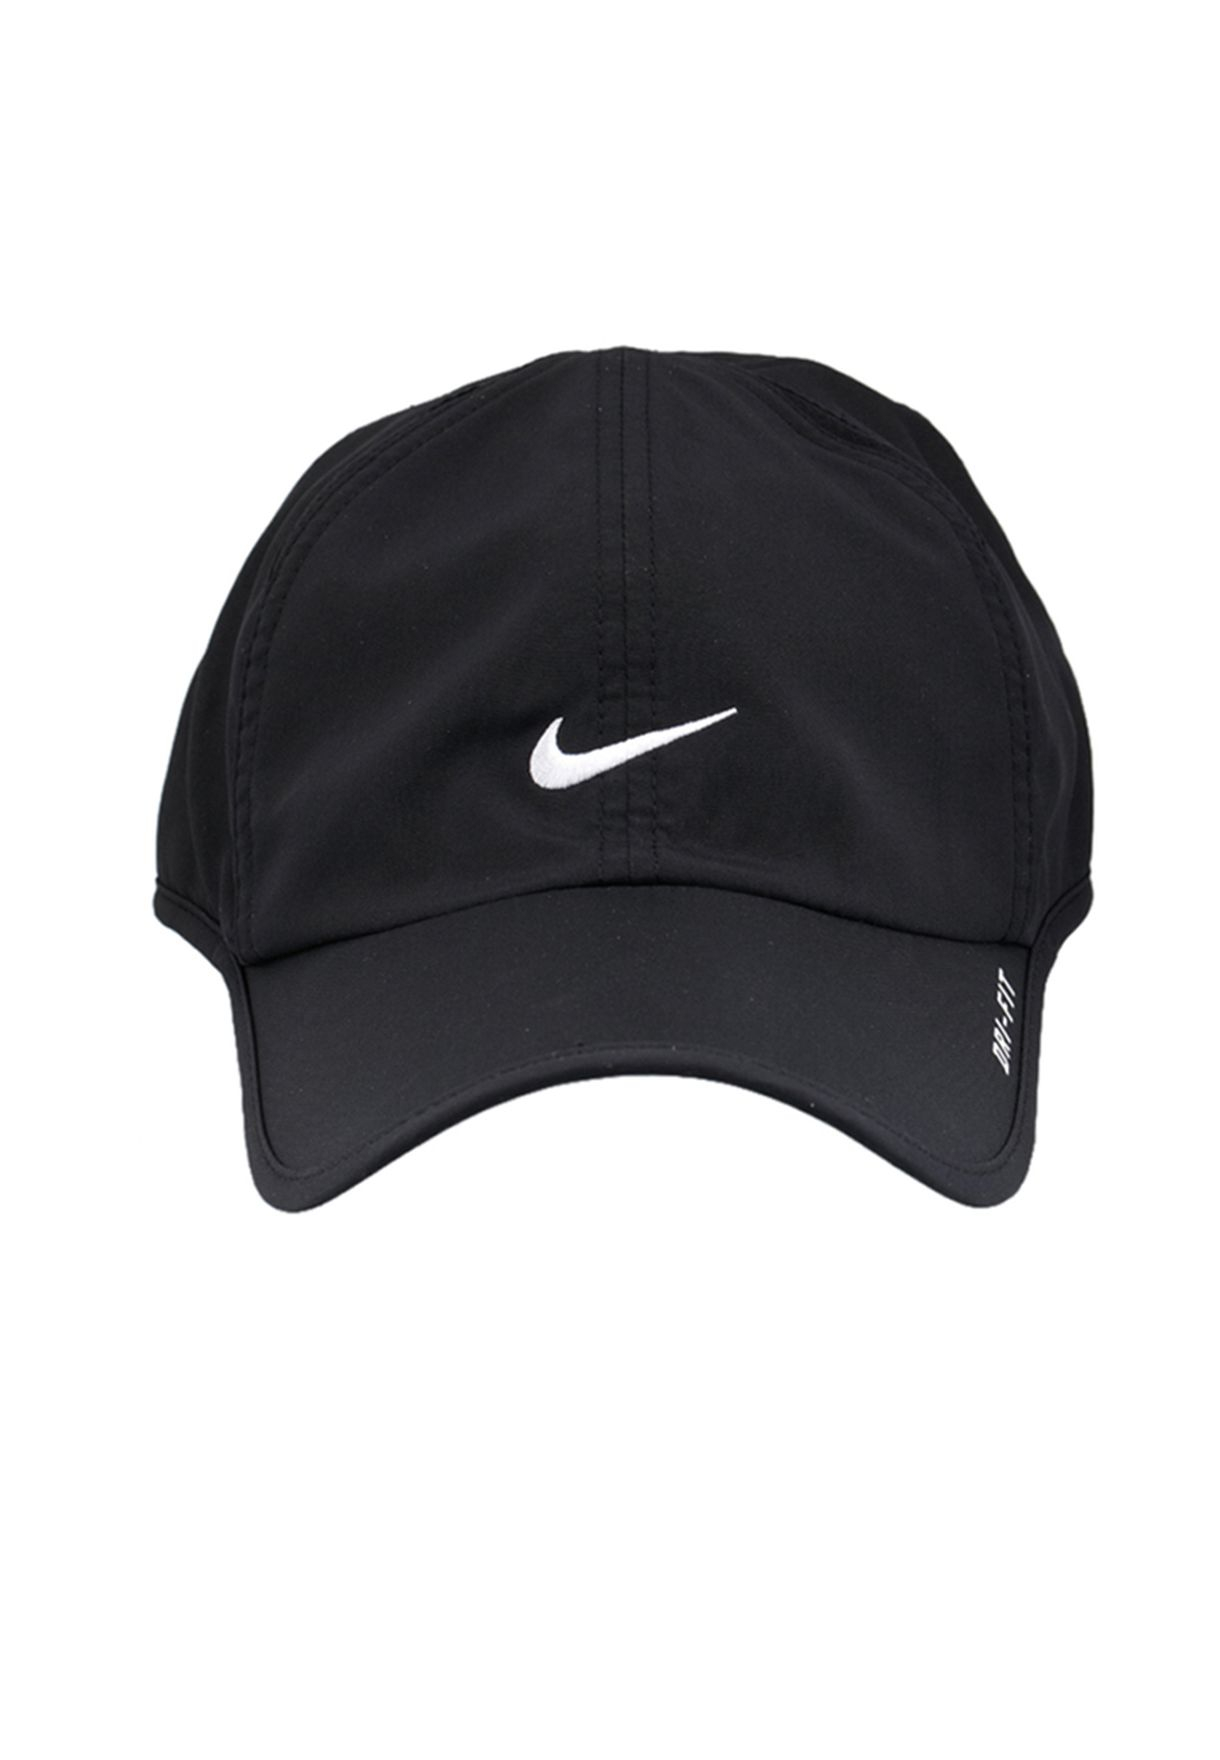 Shop Nike black Feather Light Cap NKAP595510-010 for Men in ... eedacb68cf08